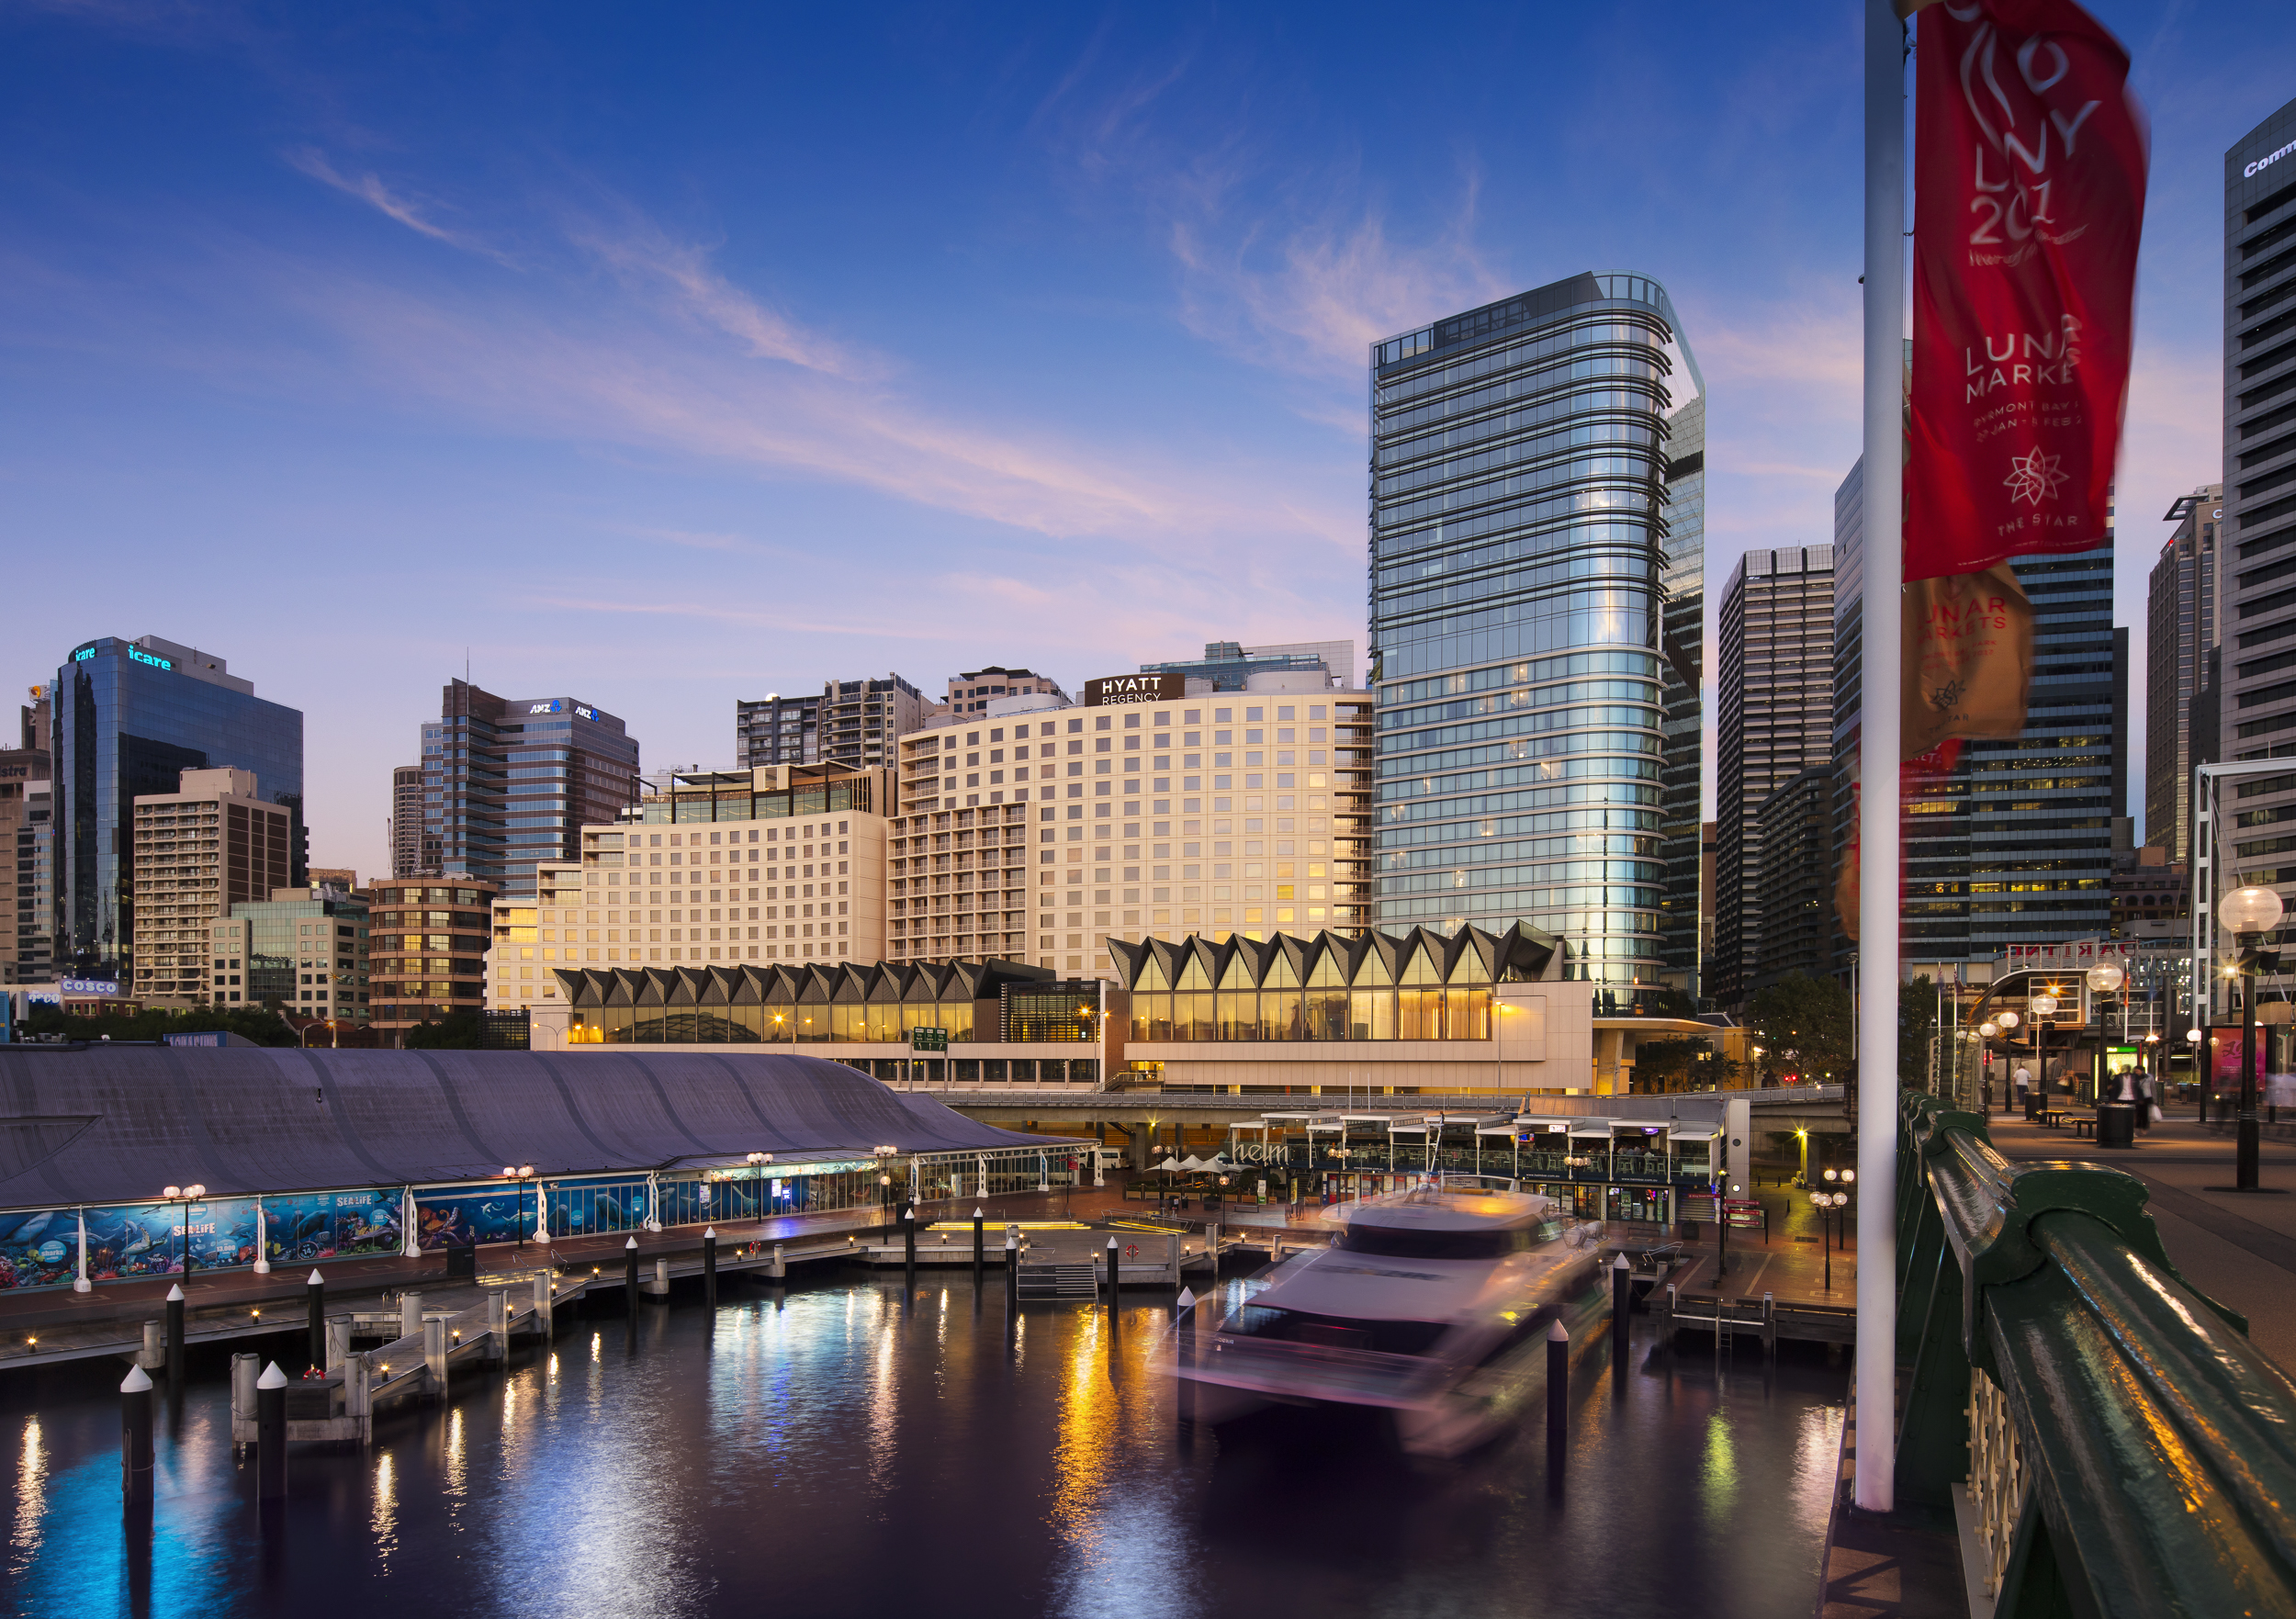 Hyatt Regency Sydney harbourside wedding venue